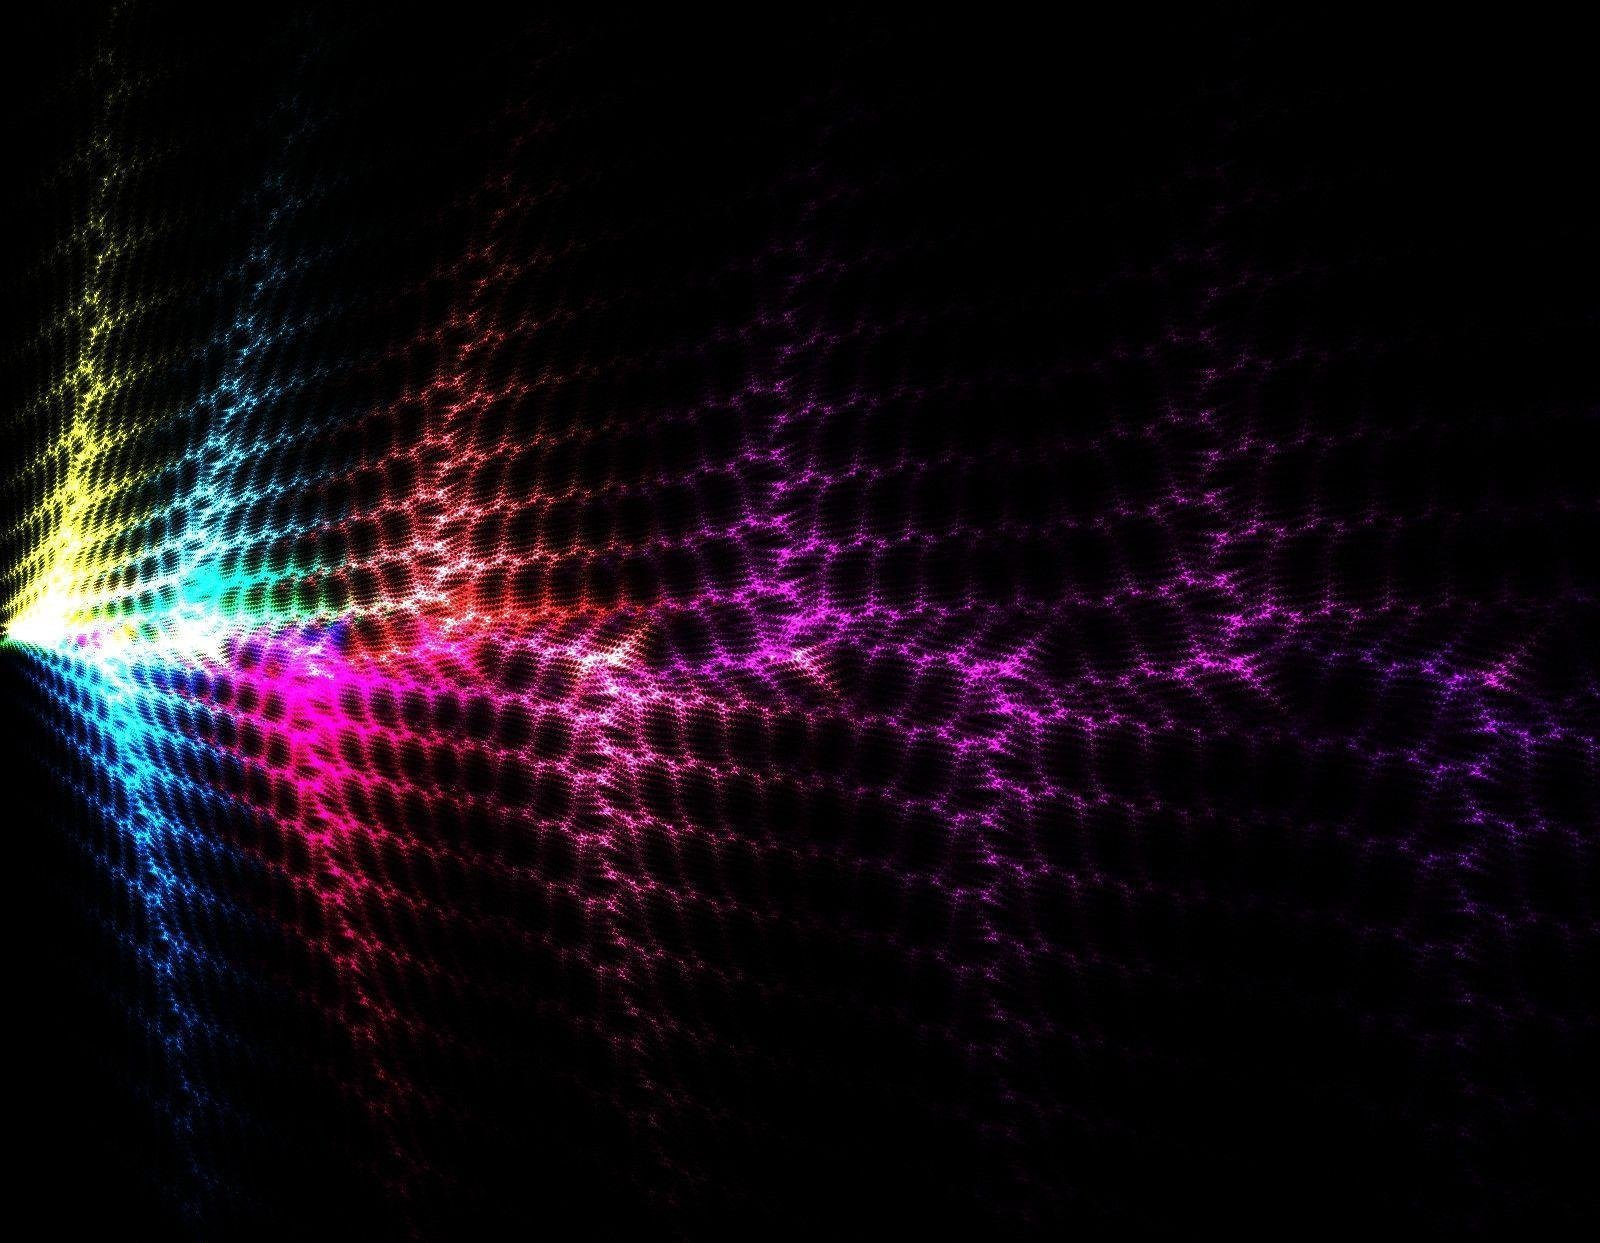 color noise hd desktop - photo #16